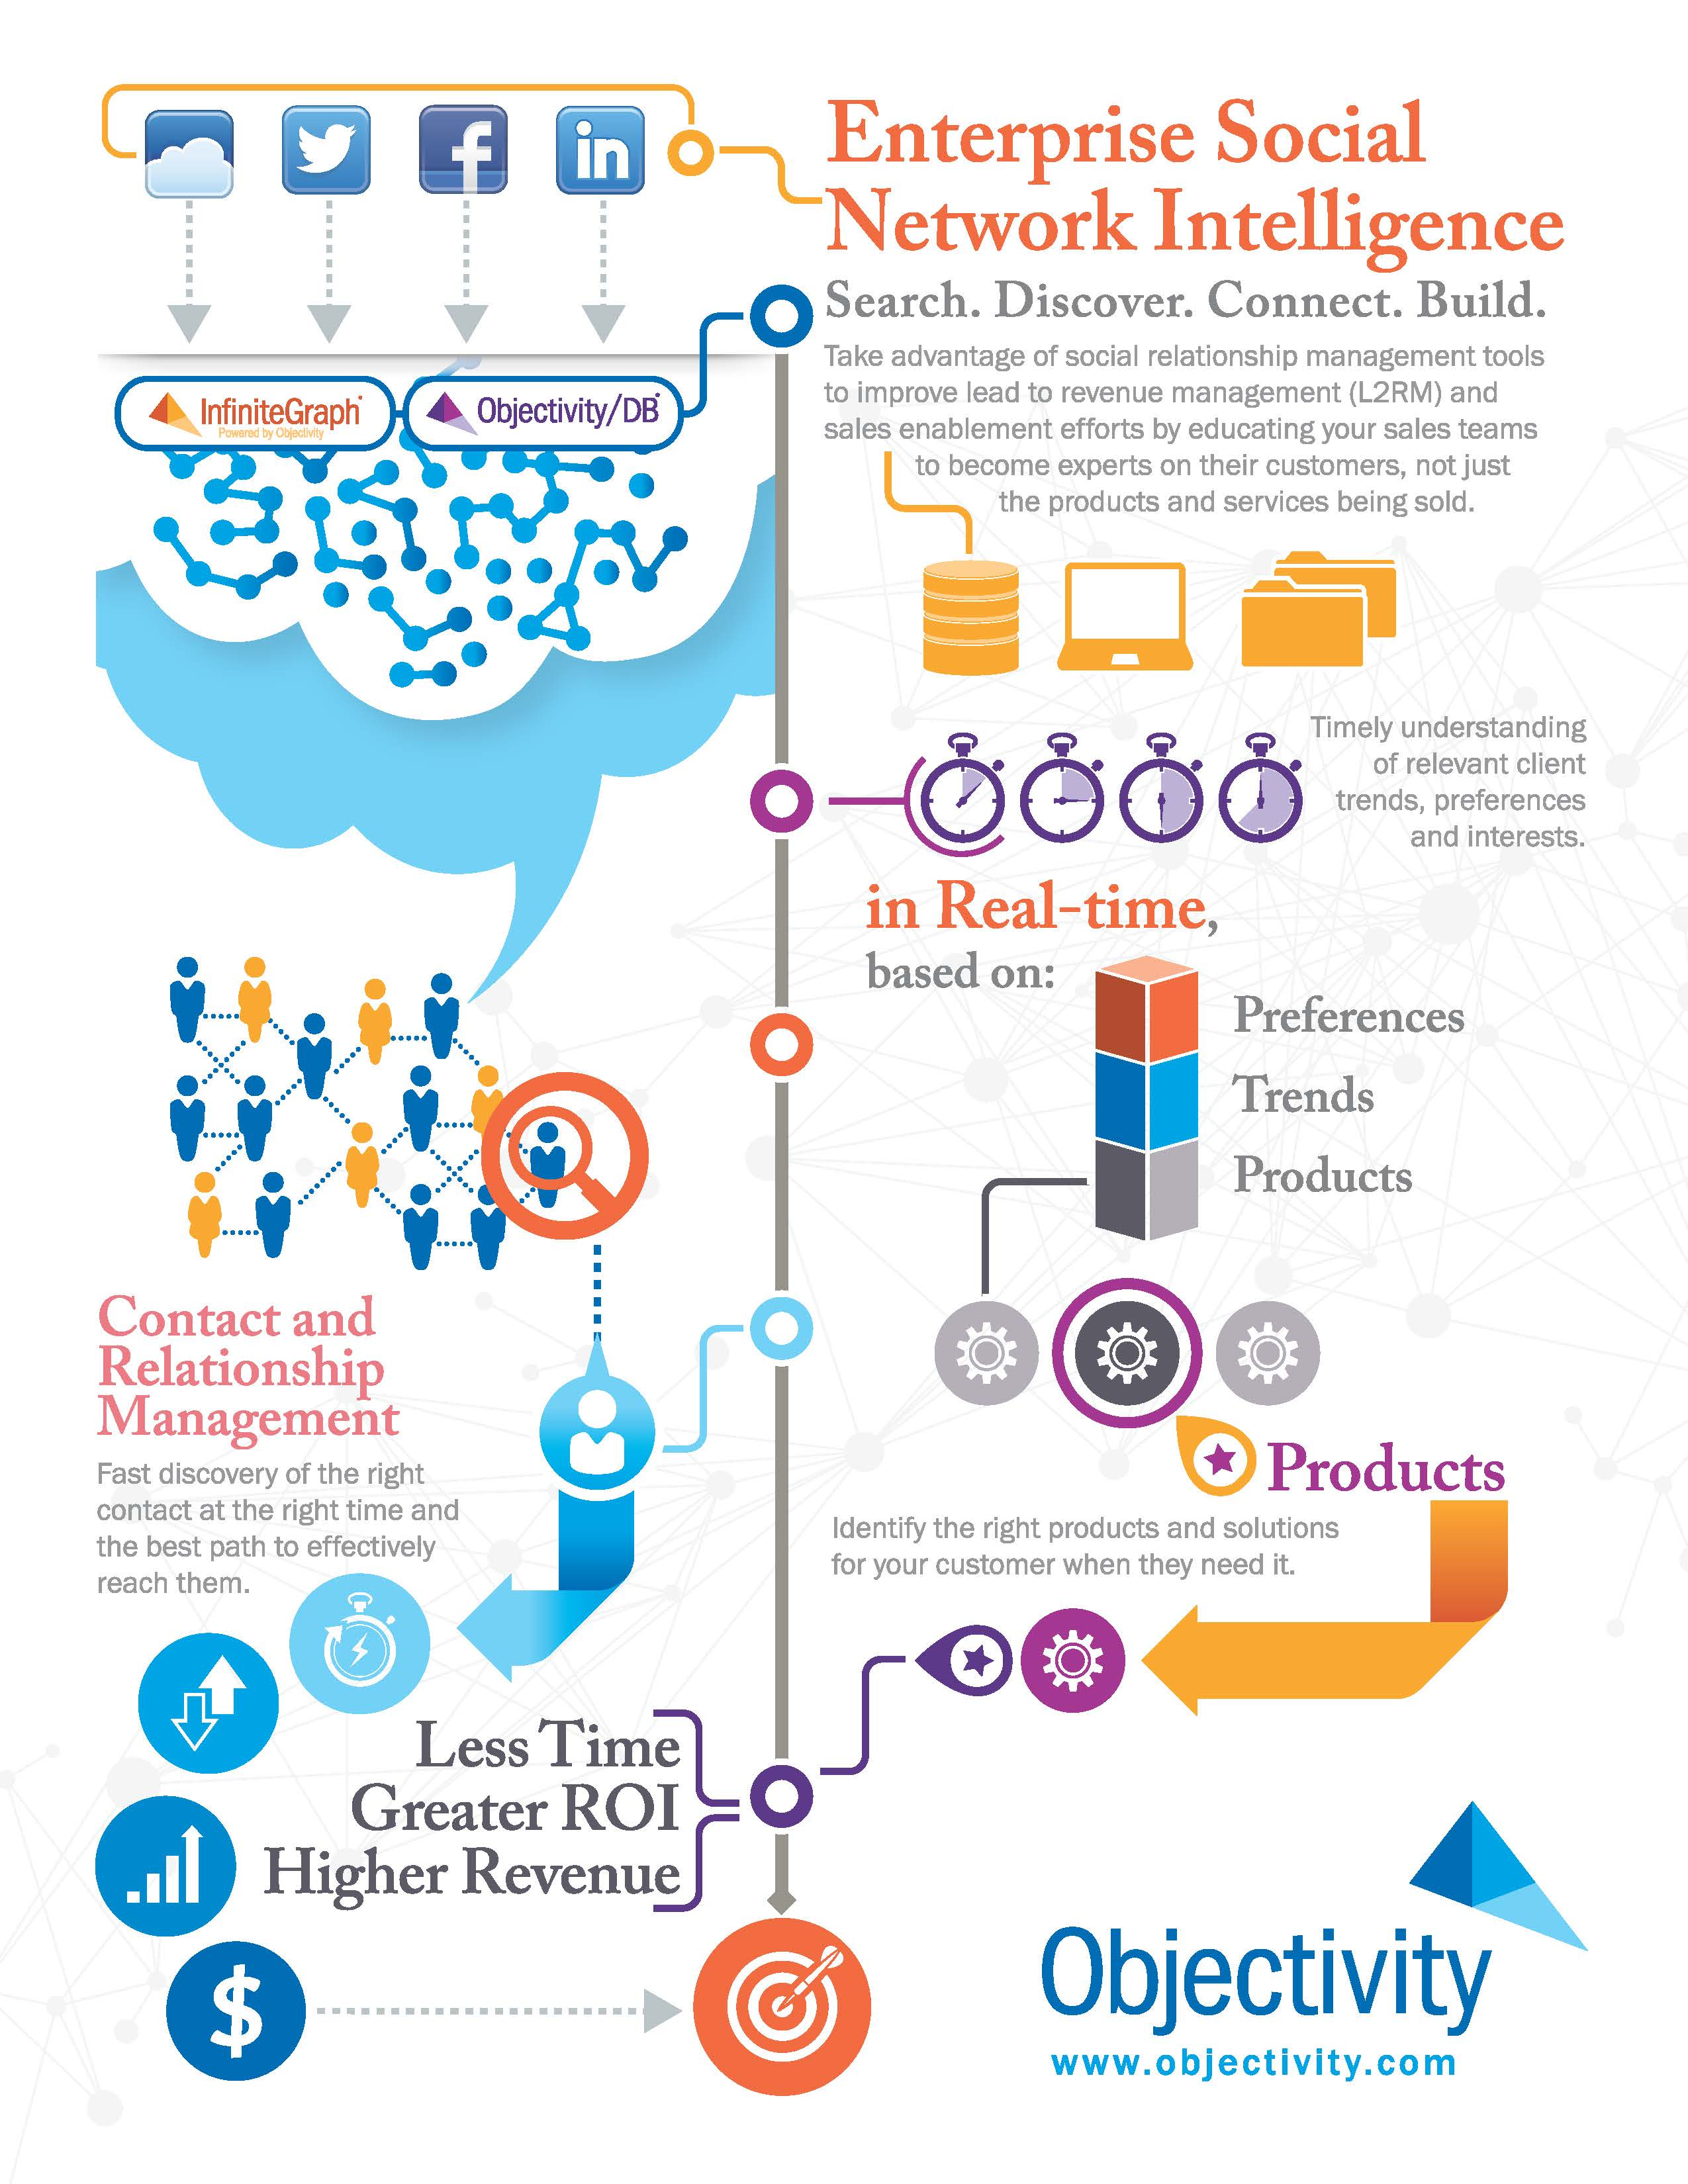 obj_infographic_BigData_edit_final